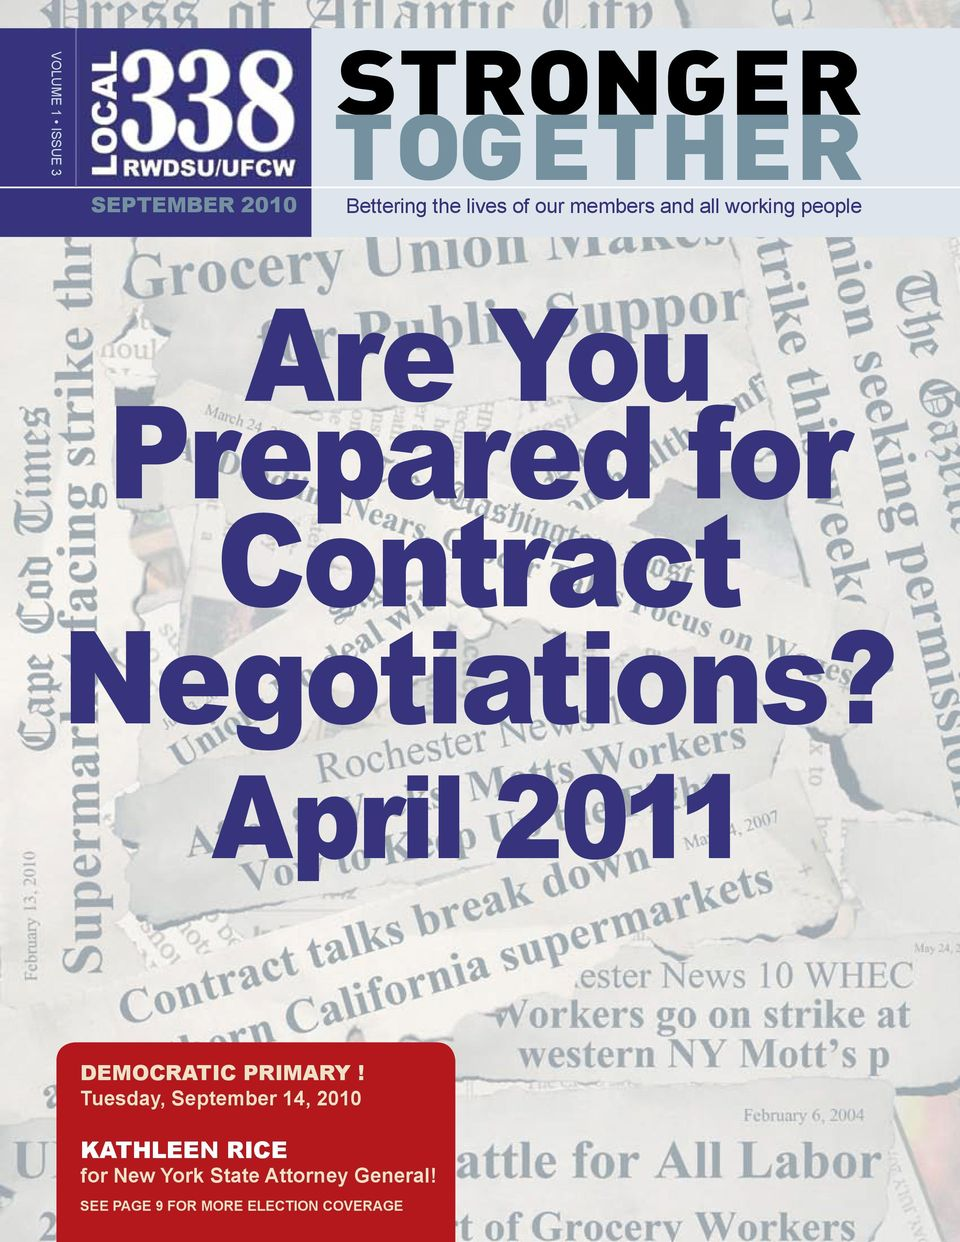 Negotiations? April 2011 DEMOCRATIC PRIMARY!